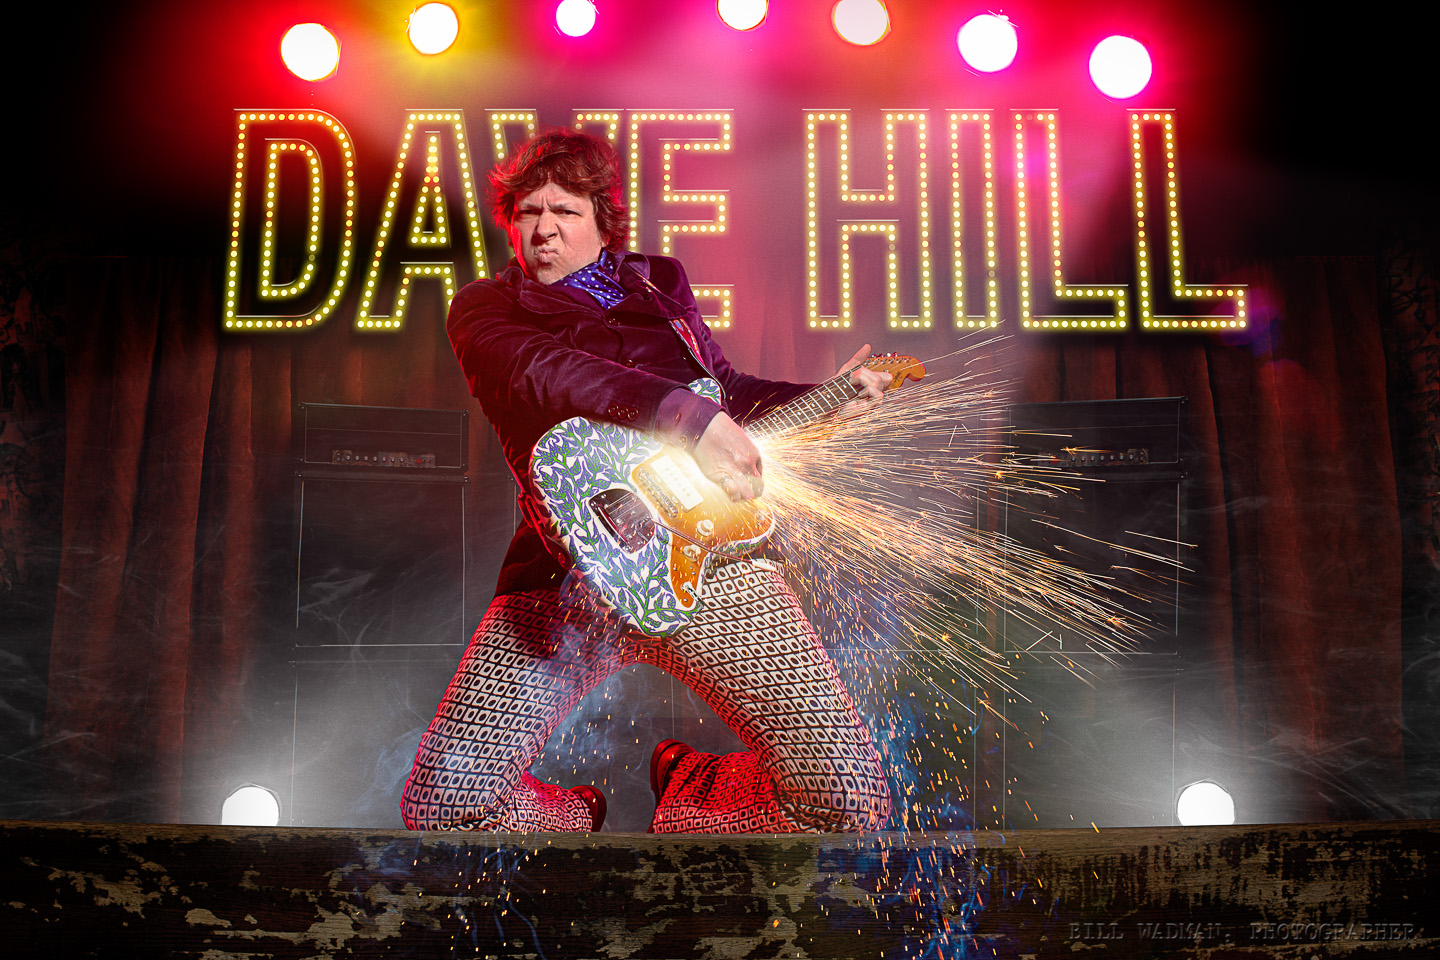 Dave Hill On Stage